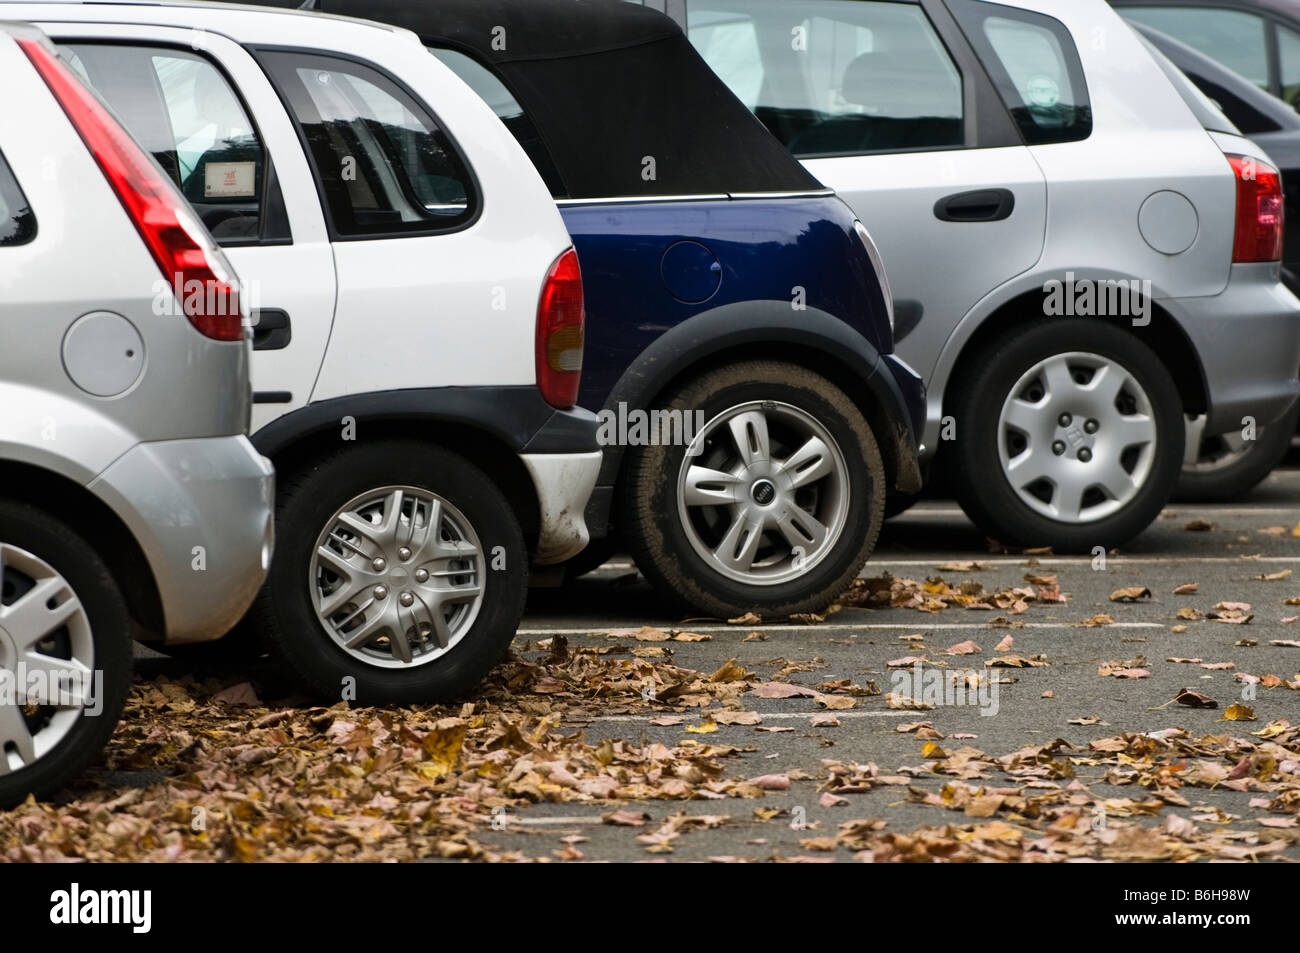 A row of small parked cars - Stock Image